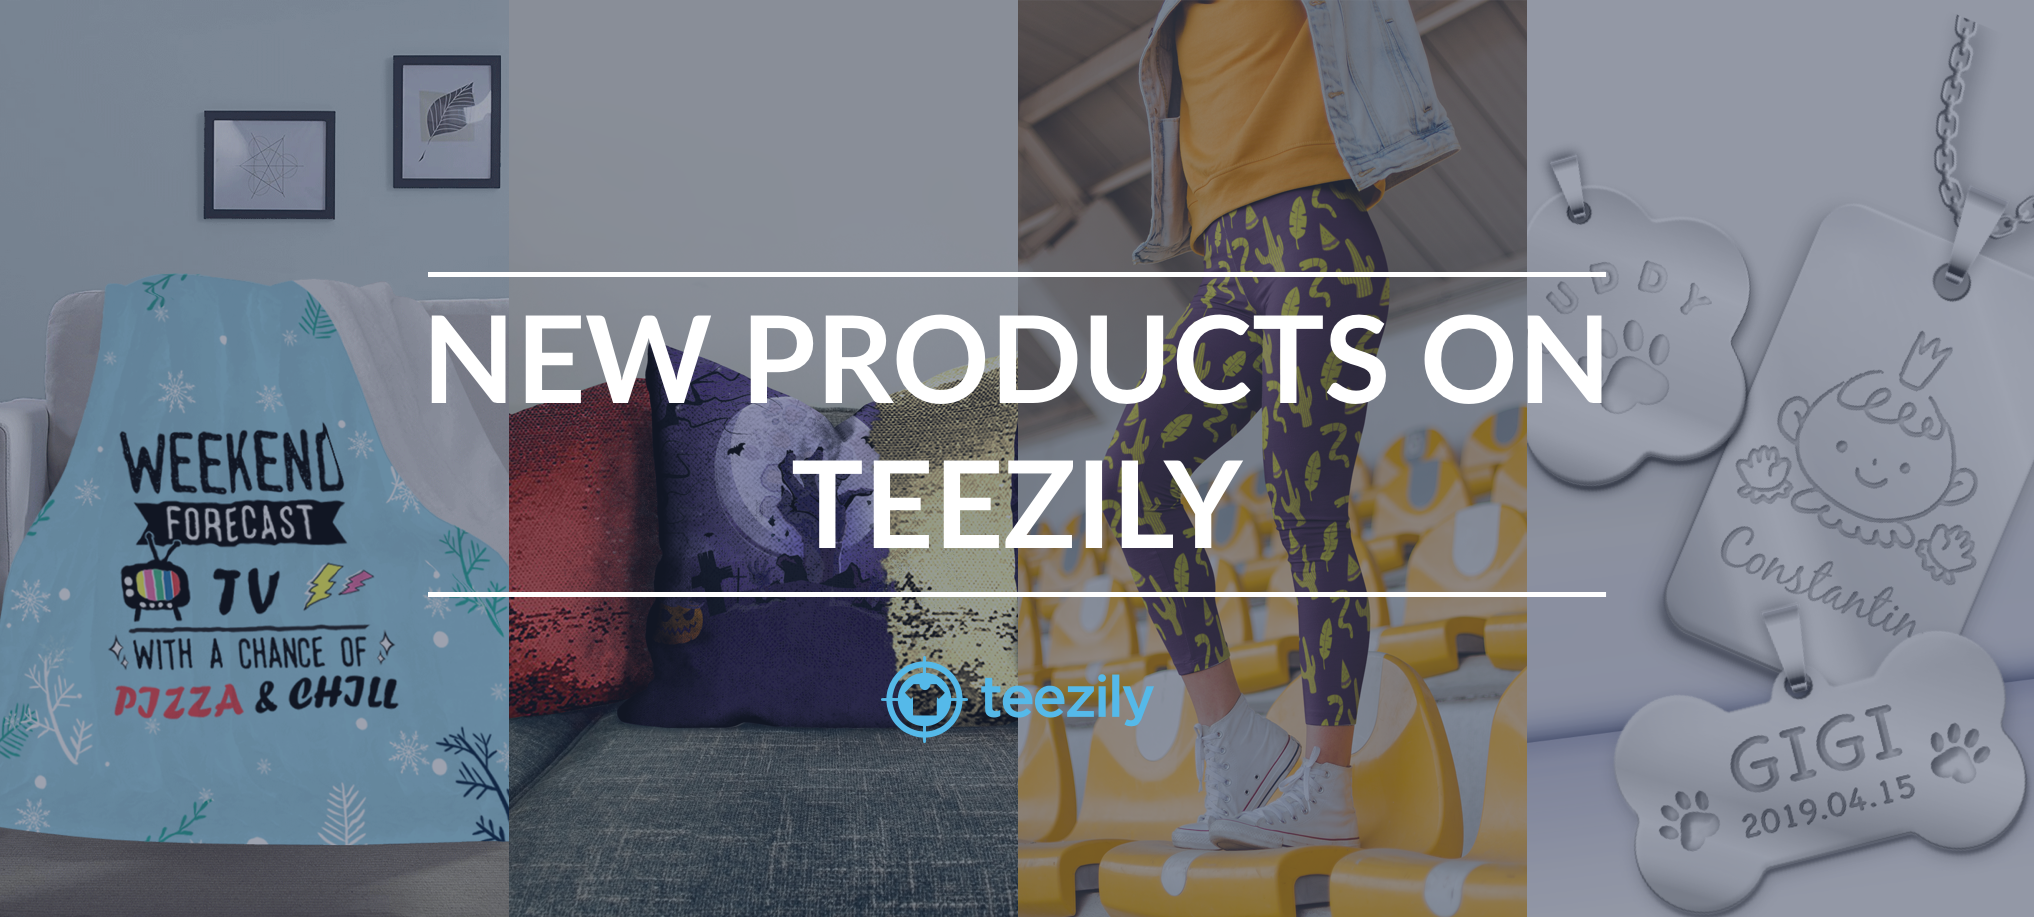 New Products Teezily